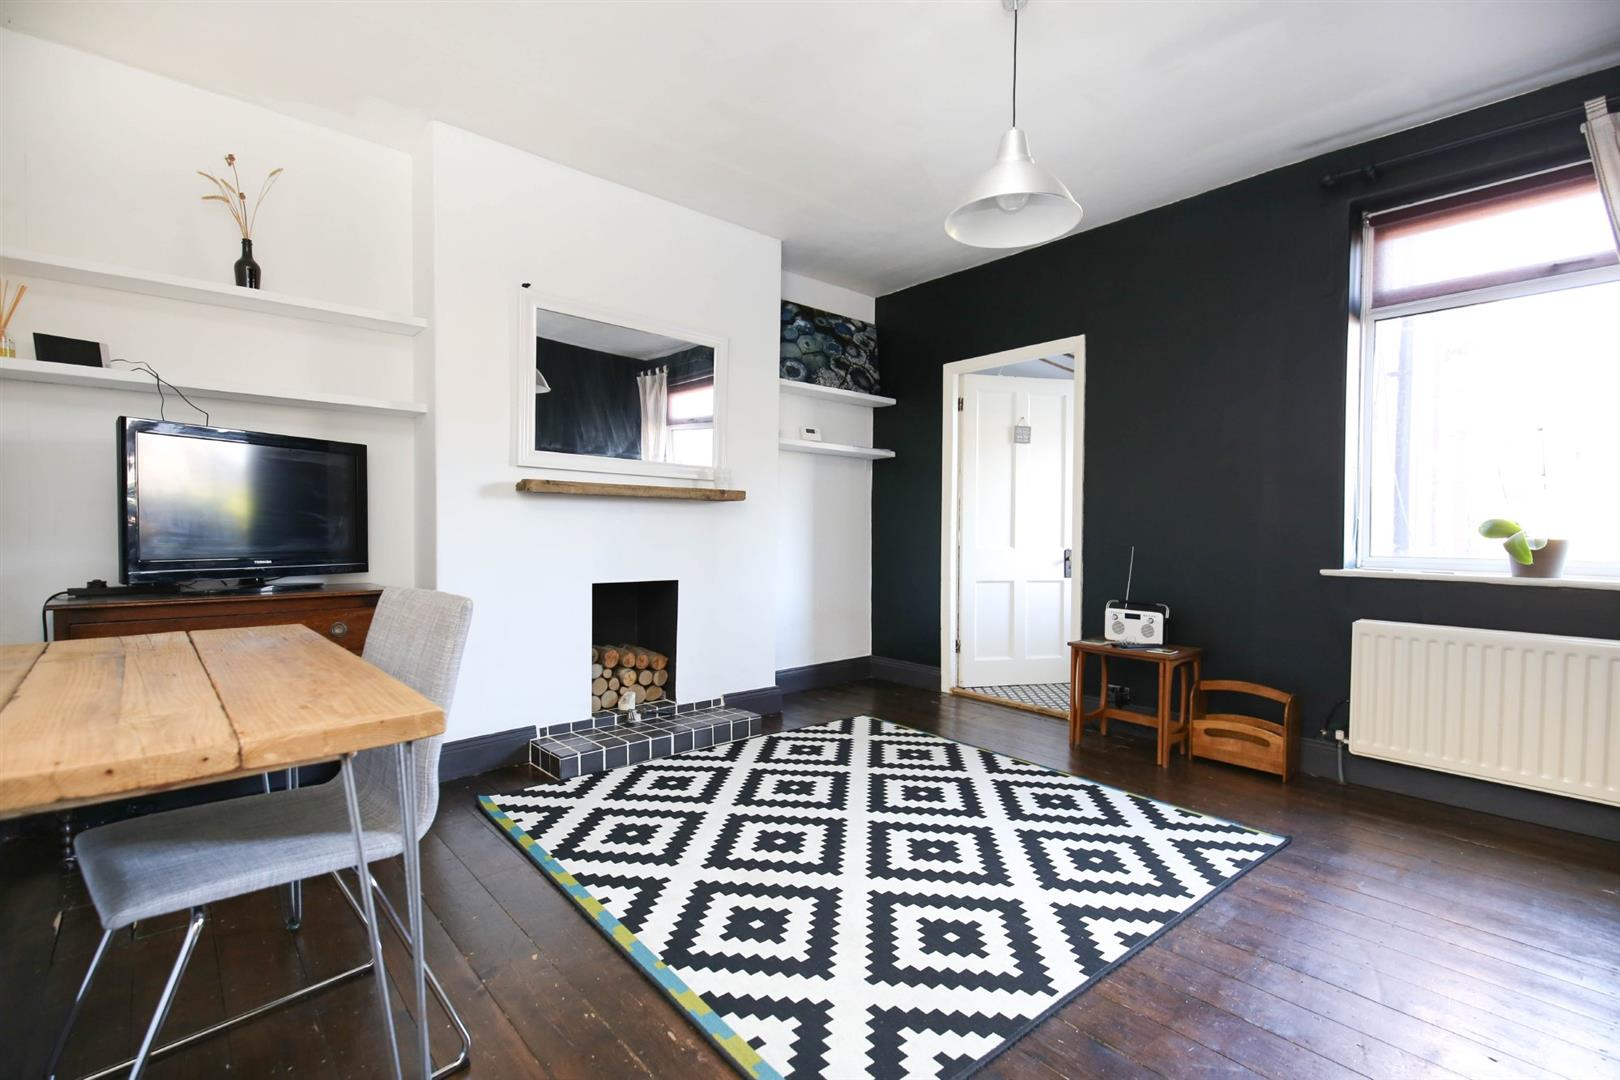 2 bed flat for sale in Newcastle Upon Tyne, NE6 2TH, NE6